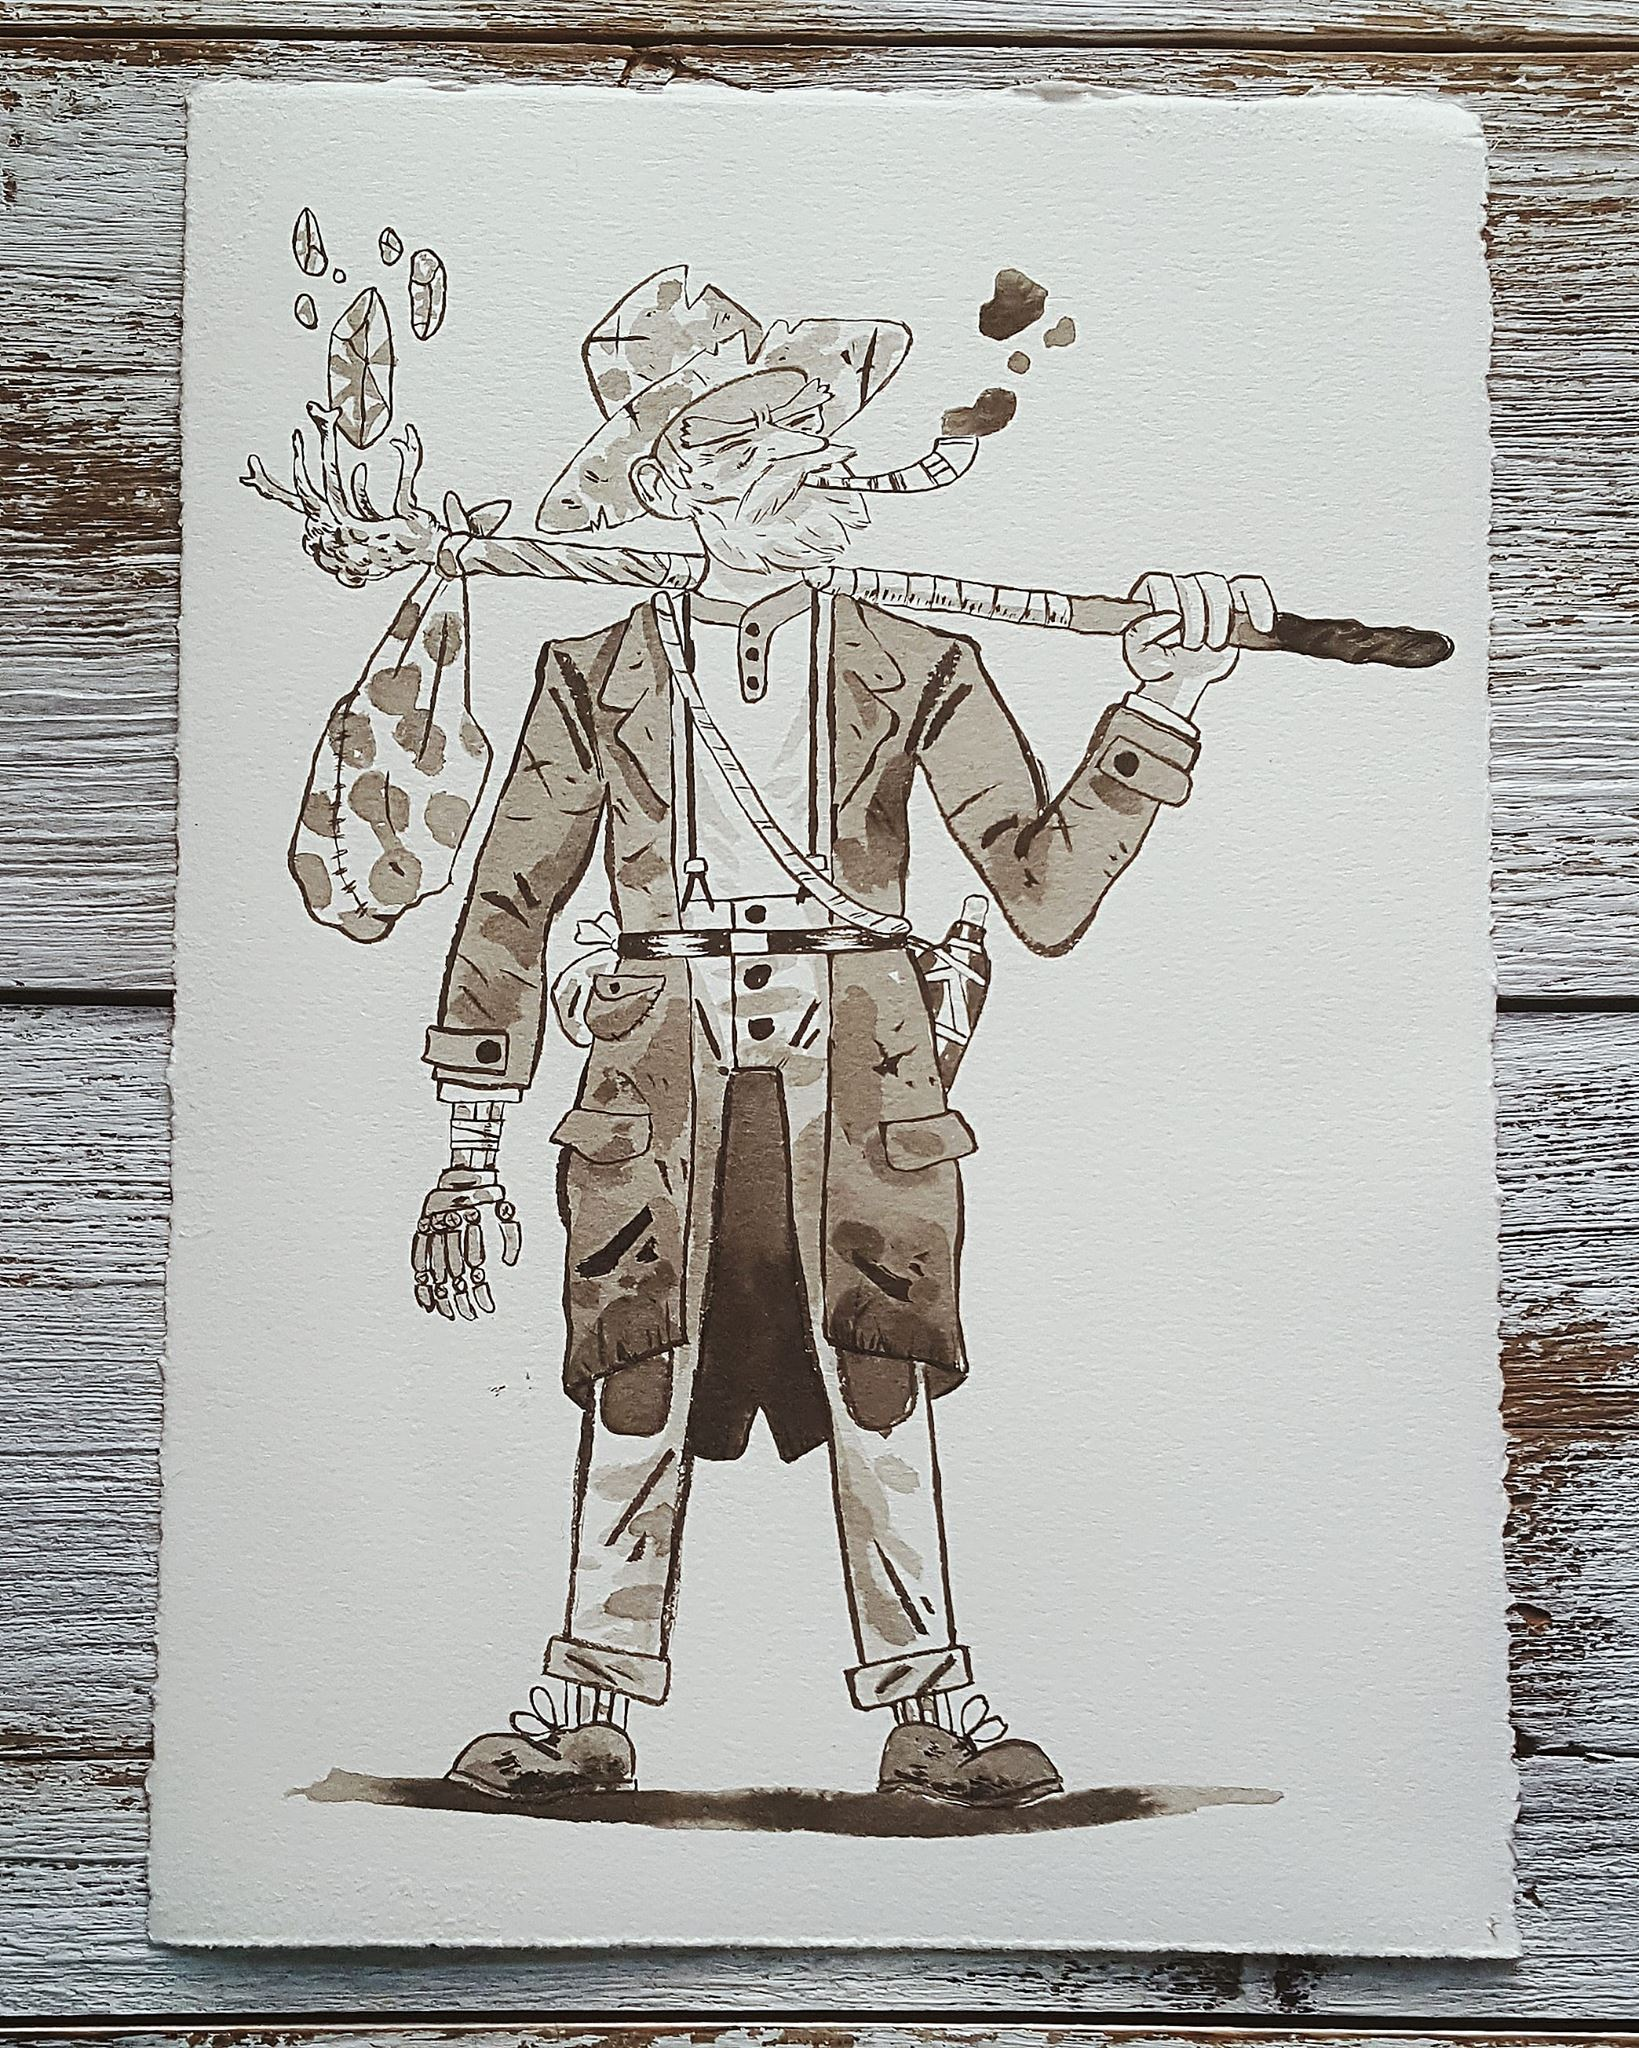 A Knight a Day No. 7, Elias The Vagabond Wizard - A decorated combat veteran who lives out his days traveling and embarking on dead-end adventures with any young and eager swordsman who will have him for a few coins.A Knight a Day No. 8, Spirit Warrior - A ghostly soldier summoned to do the bidding of a necromancer.